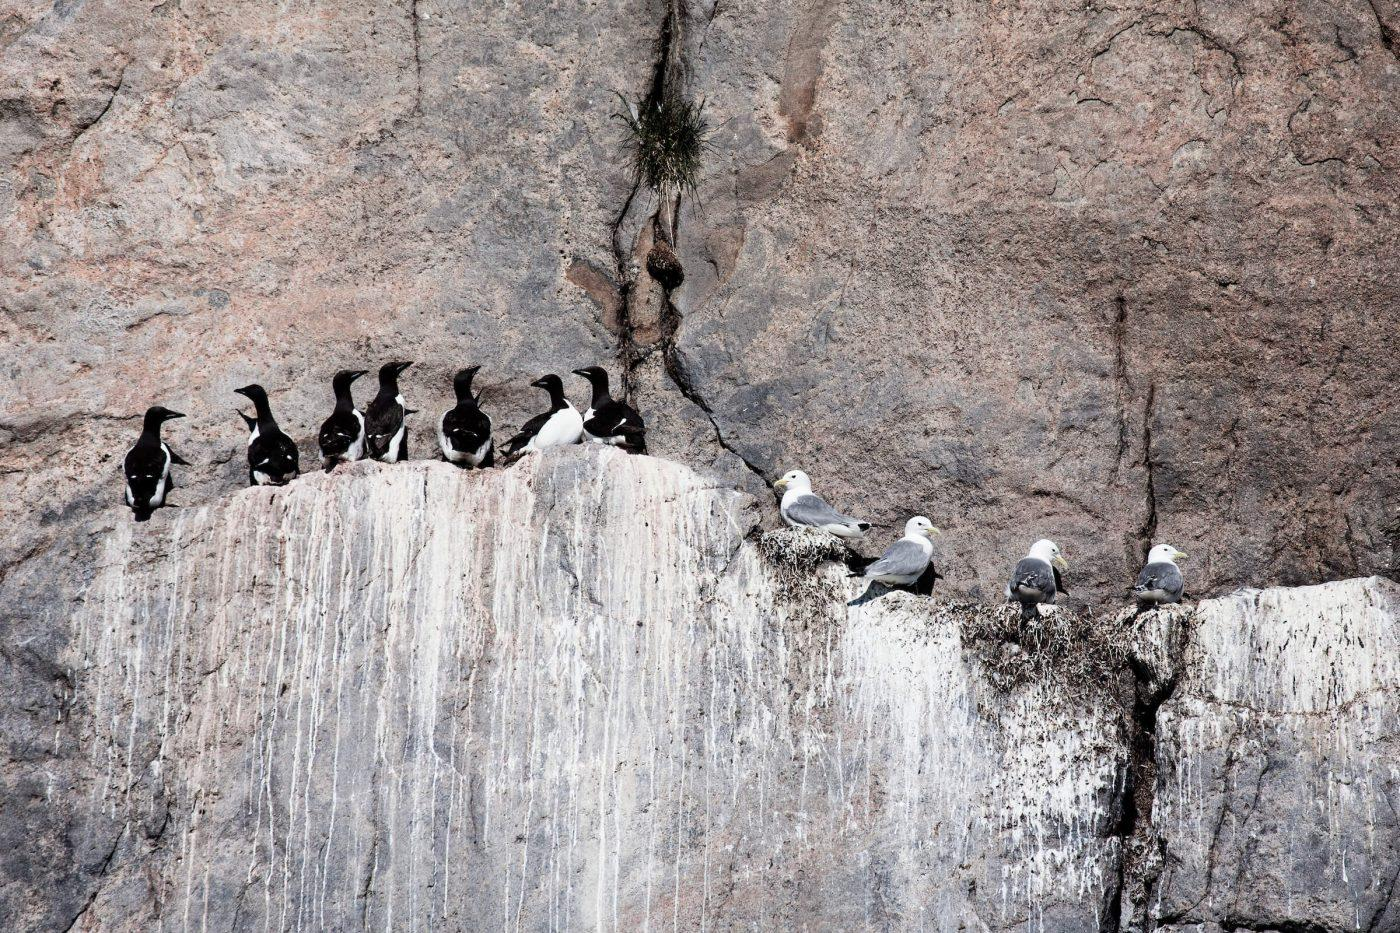 Birds sitting on a cliff. By Patricia Oczki